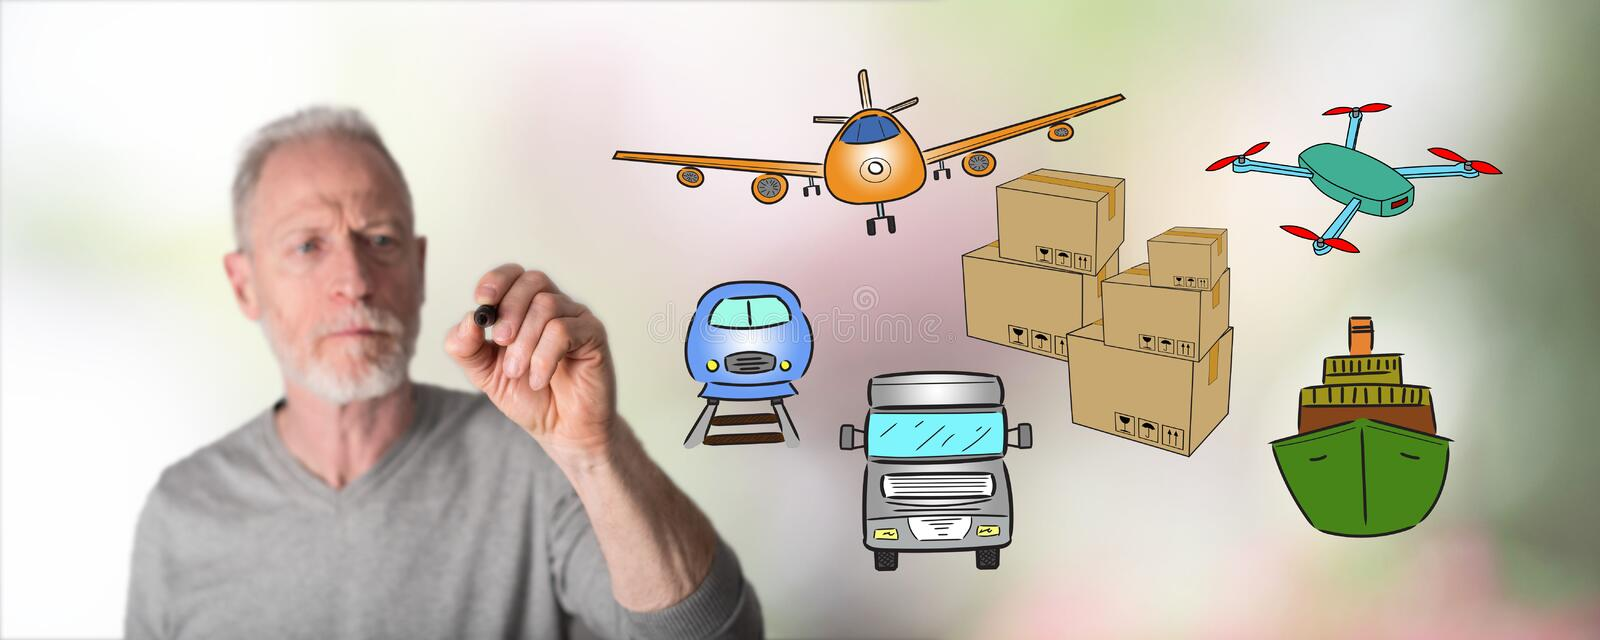 Man drawing transportation concept. Transportation concept drawn by a man stock photography